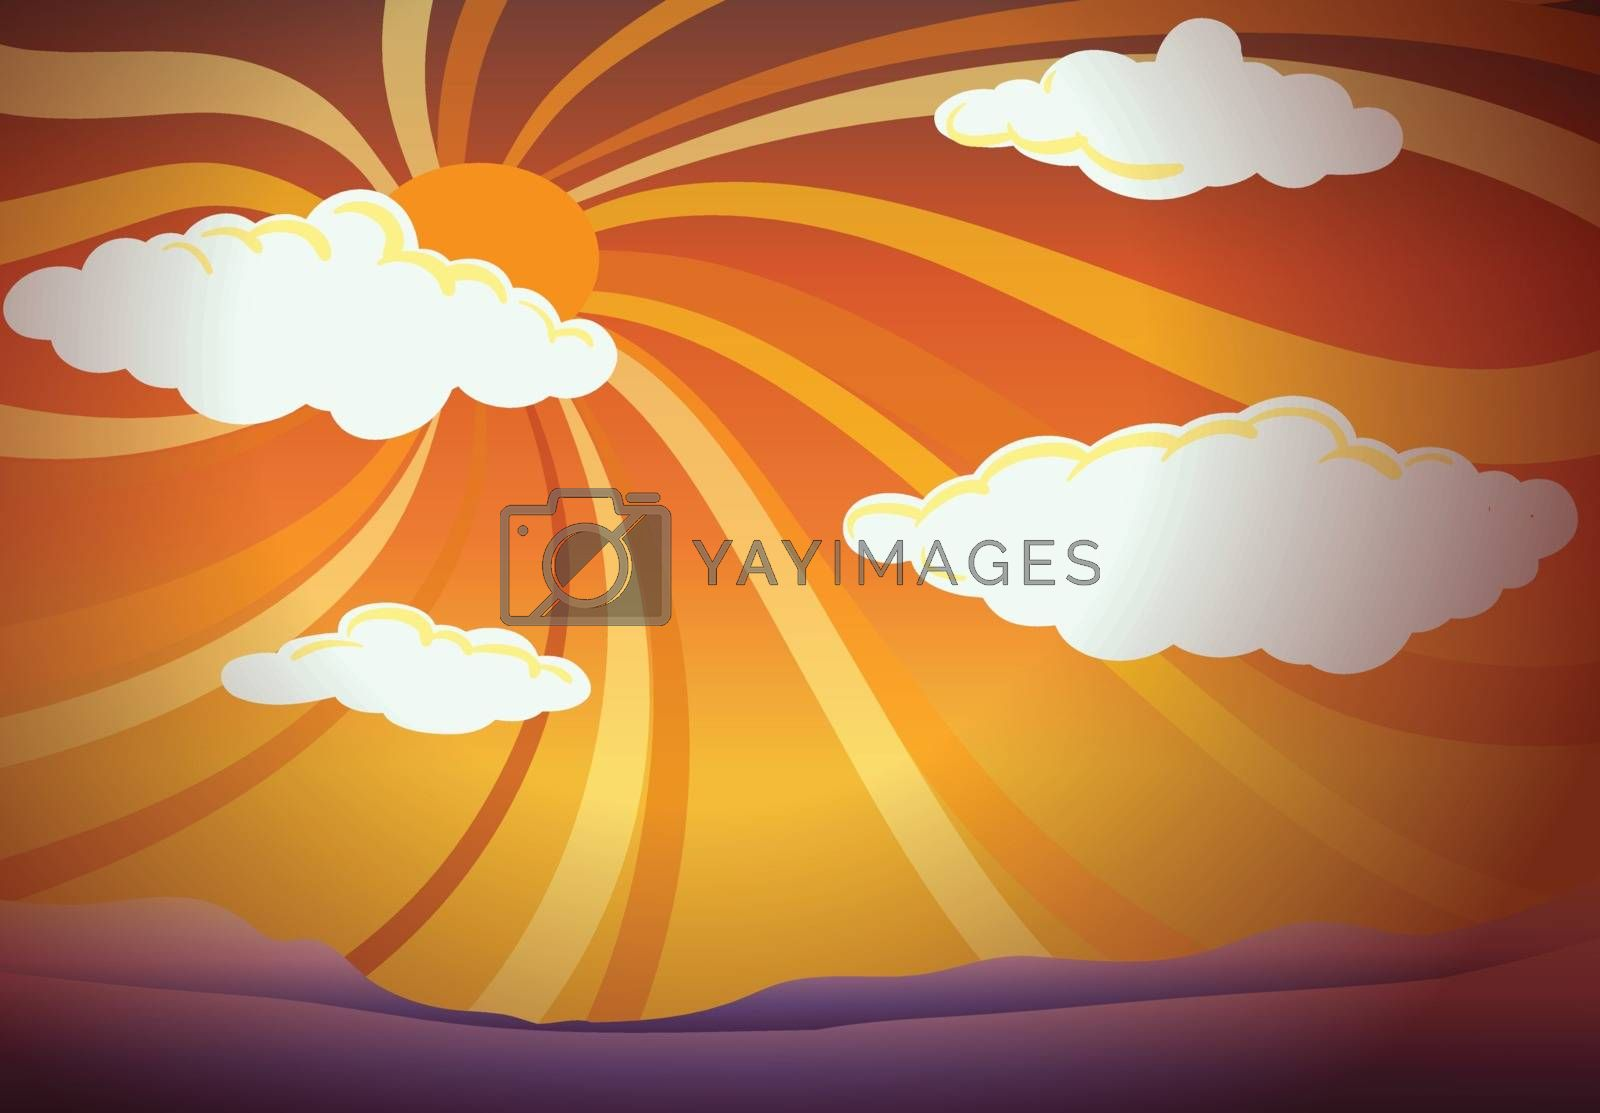 Illustration of a sunset view with clouds